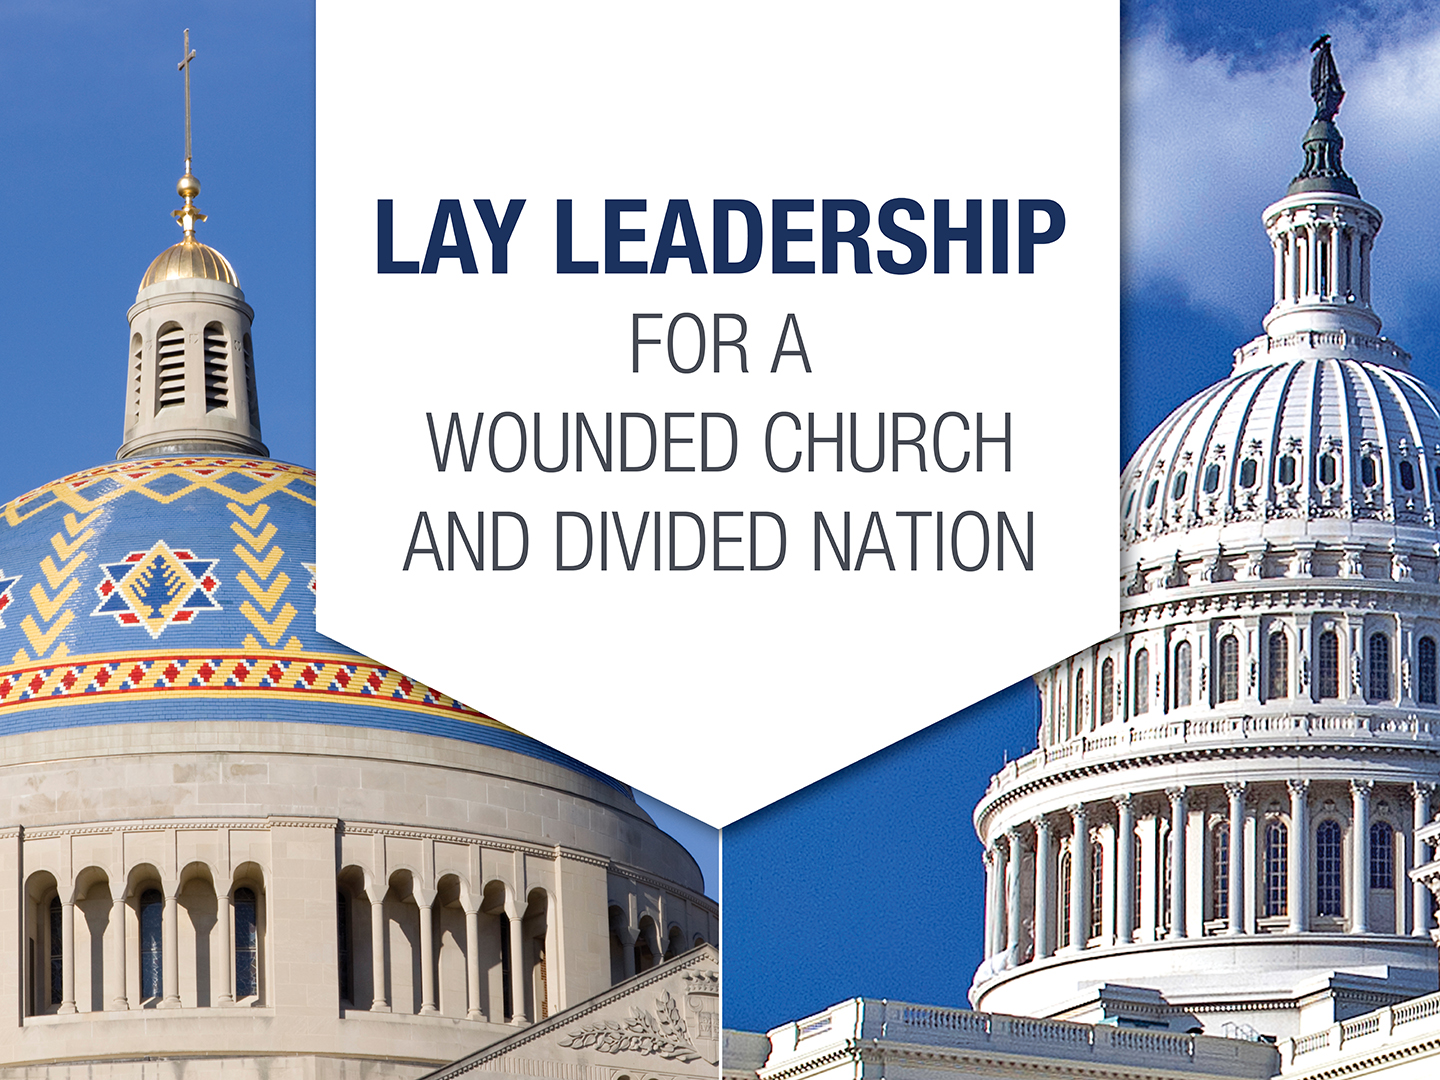 Report of the National Convening on Lay Leadership for a Wounded Church and Divided Nation